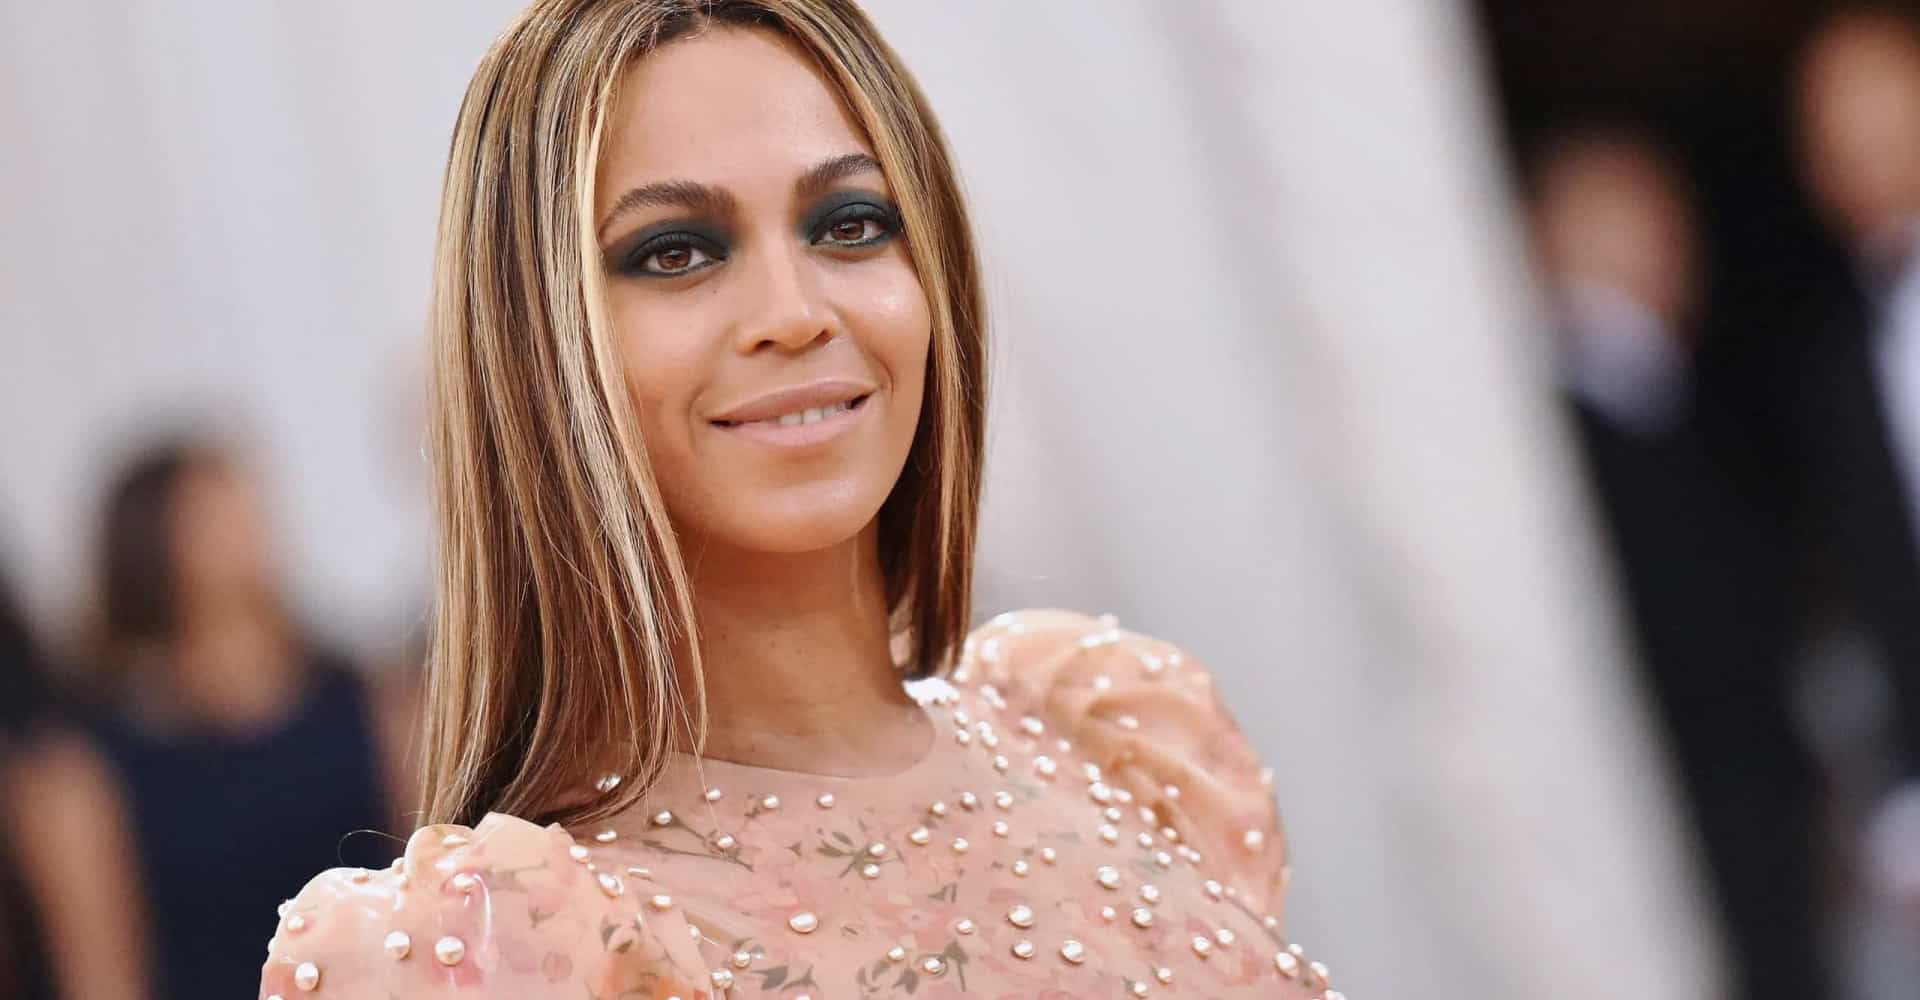 From Beyoncé to Bowie: discover the most famous musical alter egos